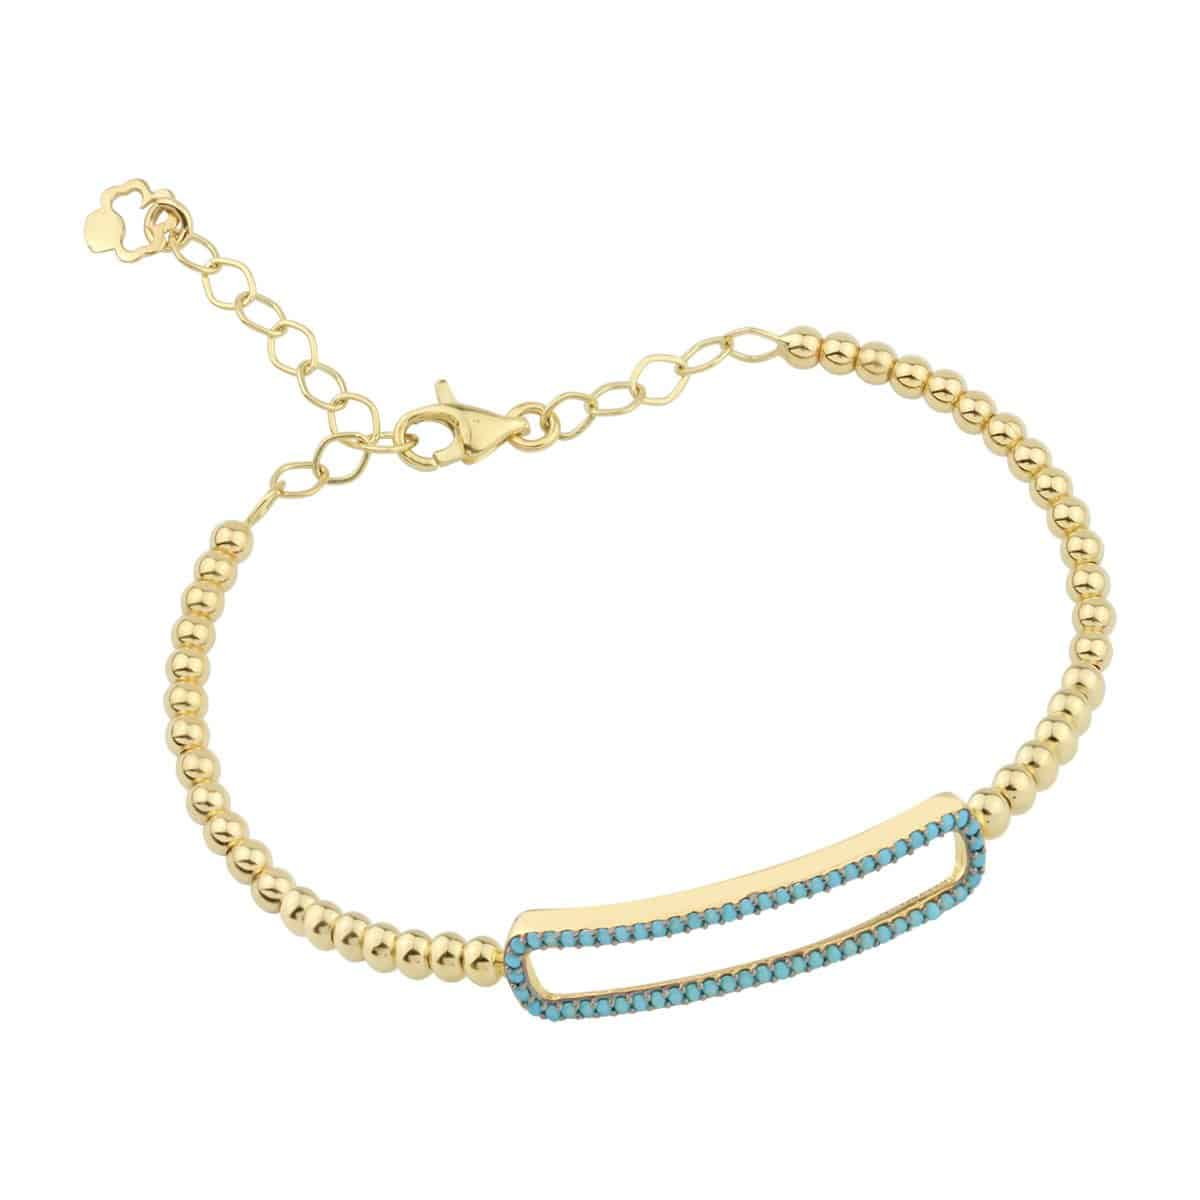 Aria Turquoise 18ct Gold Cuff Bracelet